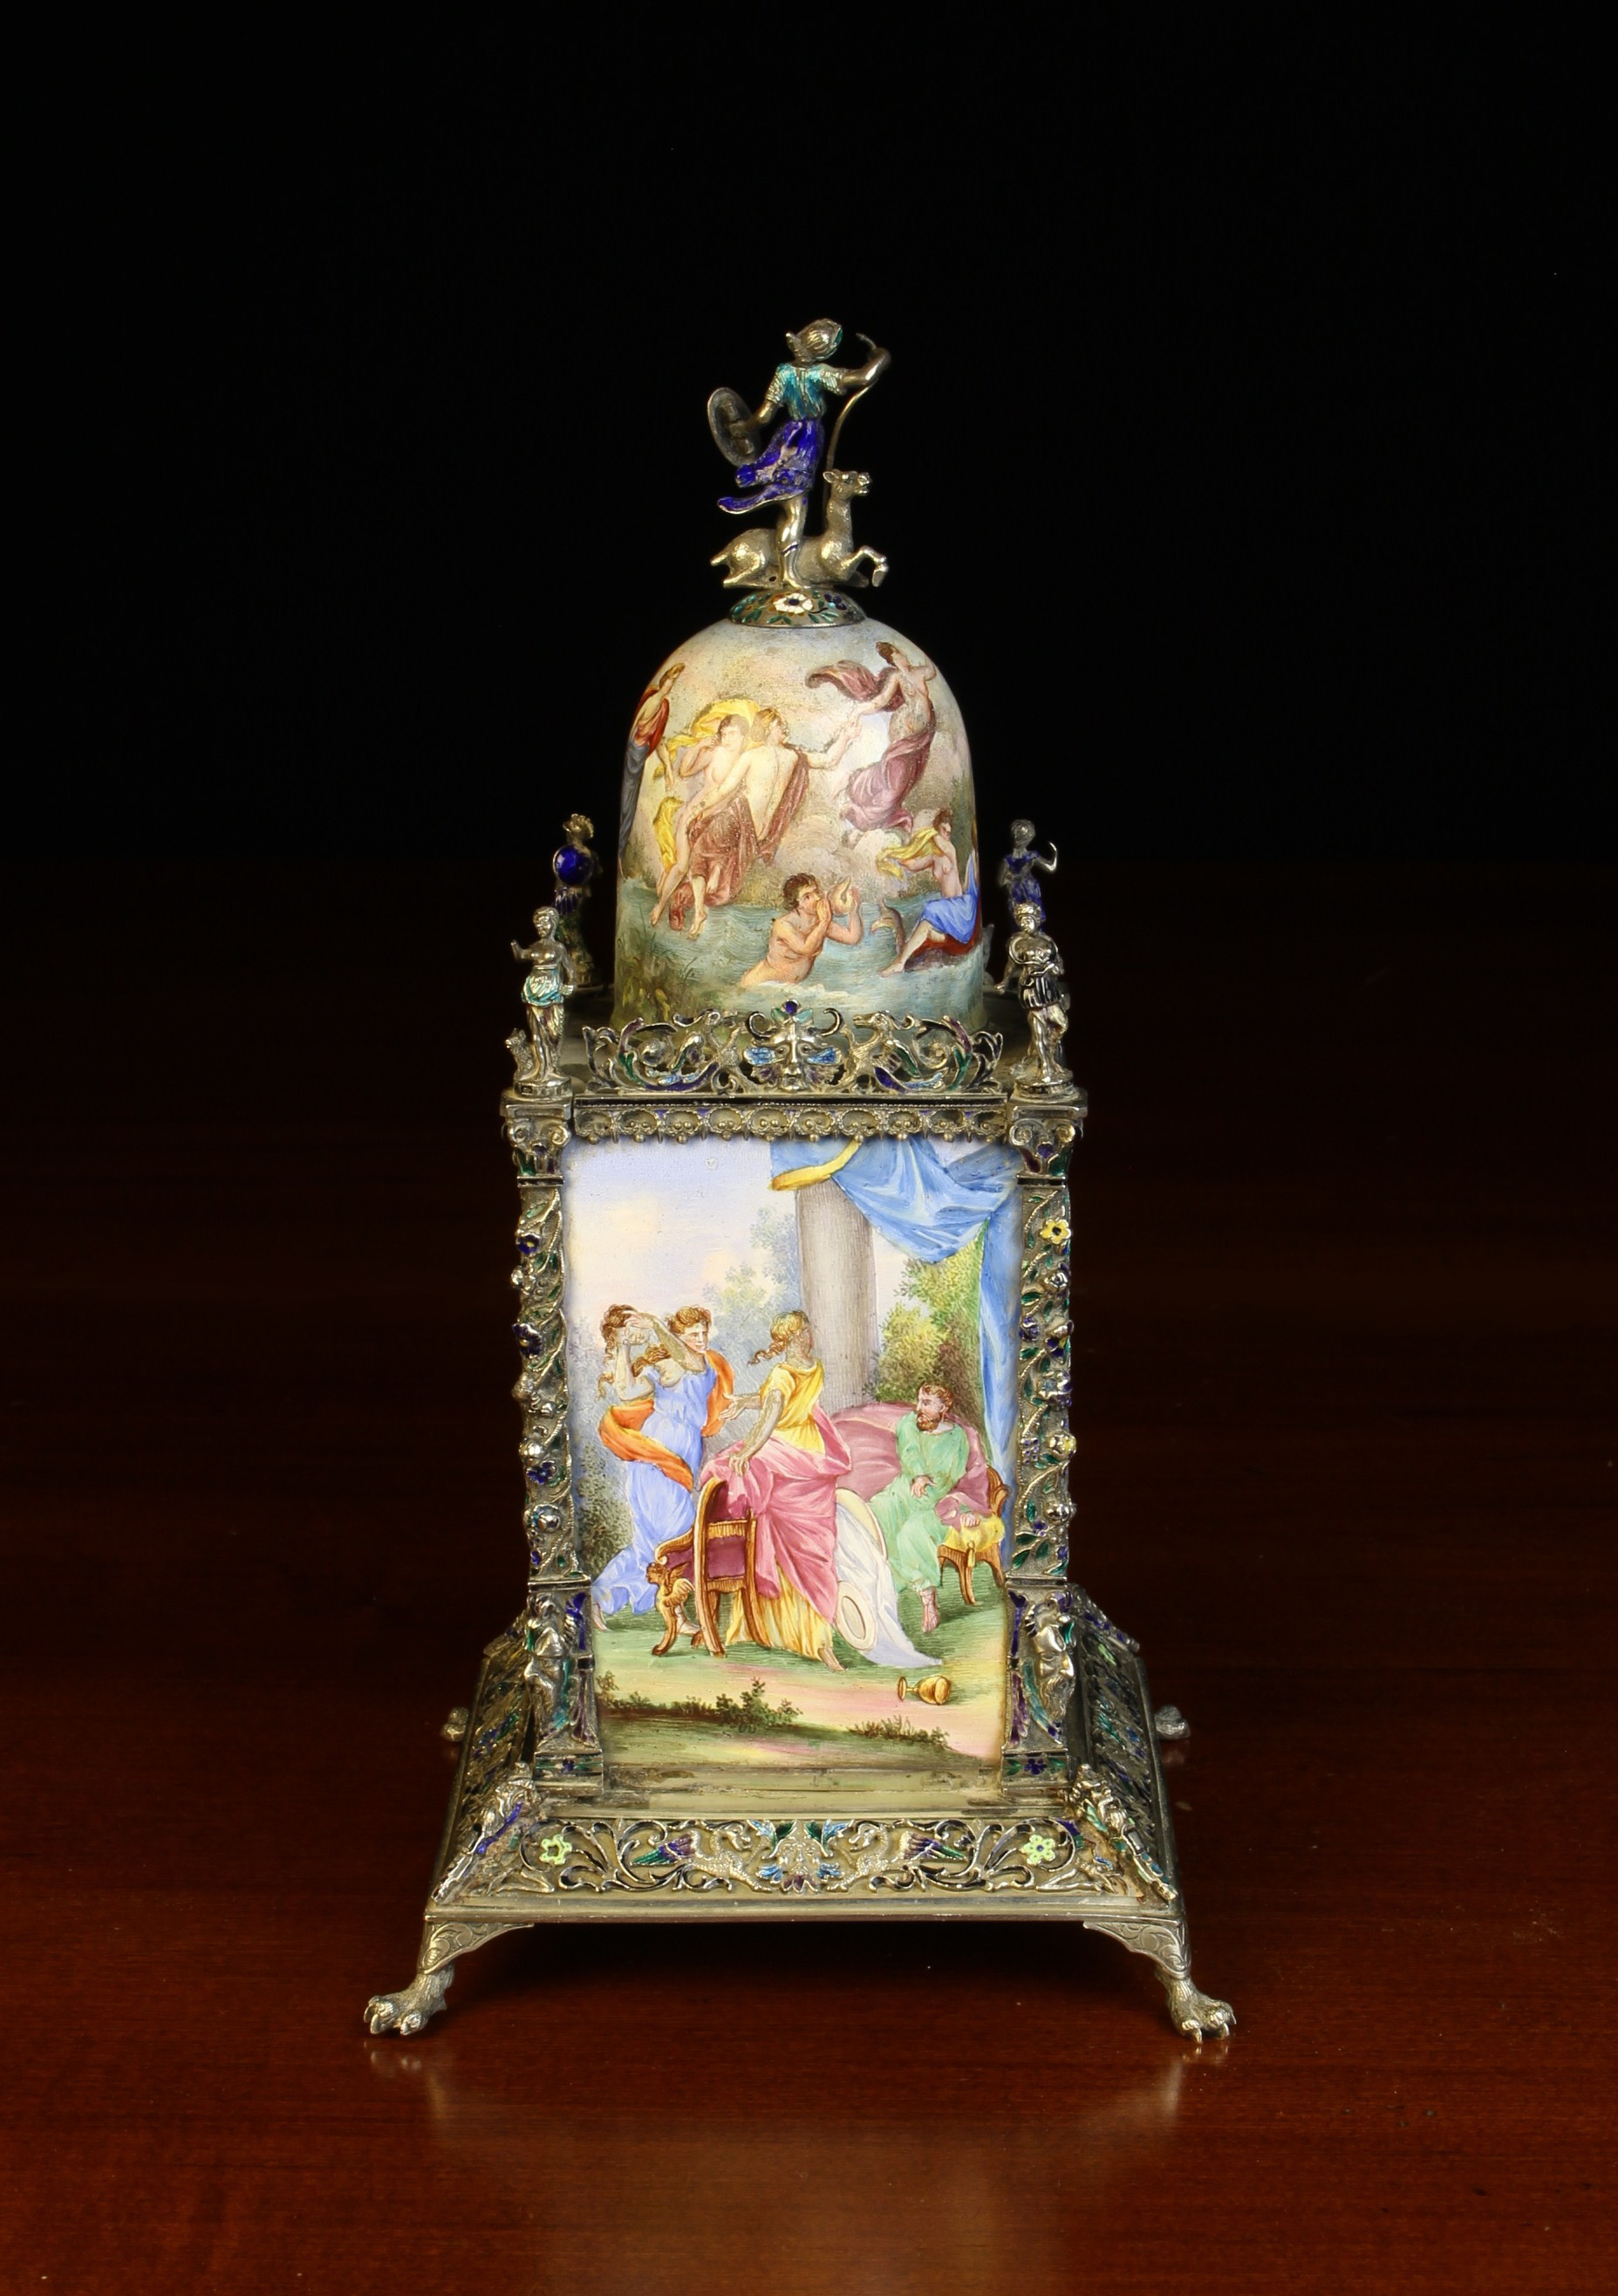 A Small & Highly Decorative Vienna Enamel Table Clock. - Image 4 of 4